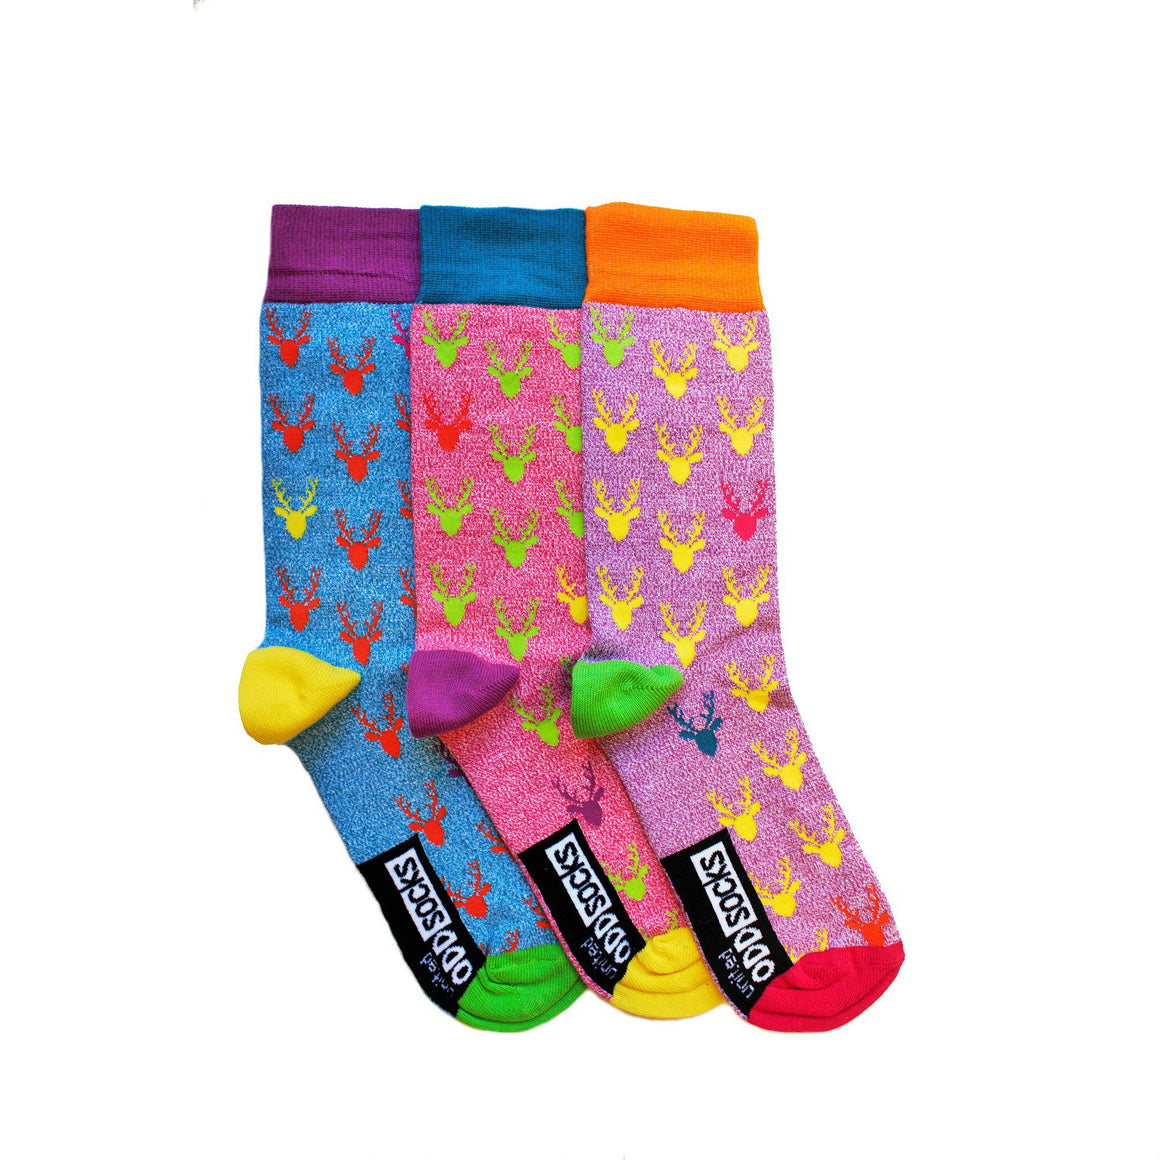 United Odd Socks Stag Christmas Socks Mens 3 Pack - The Love Trees